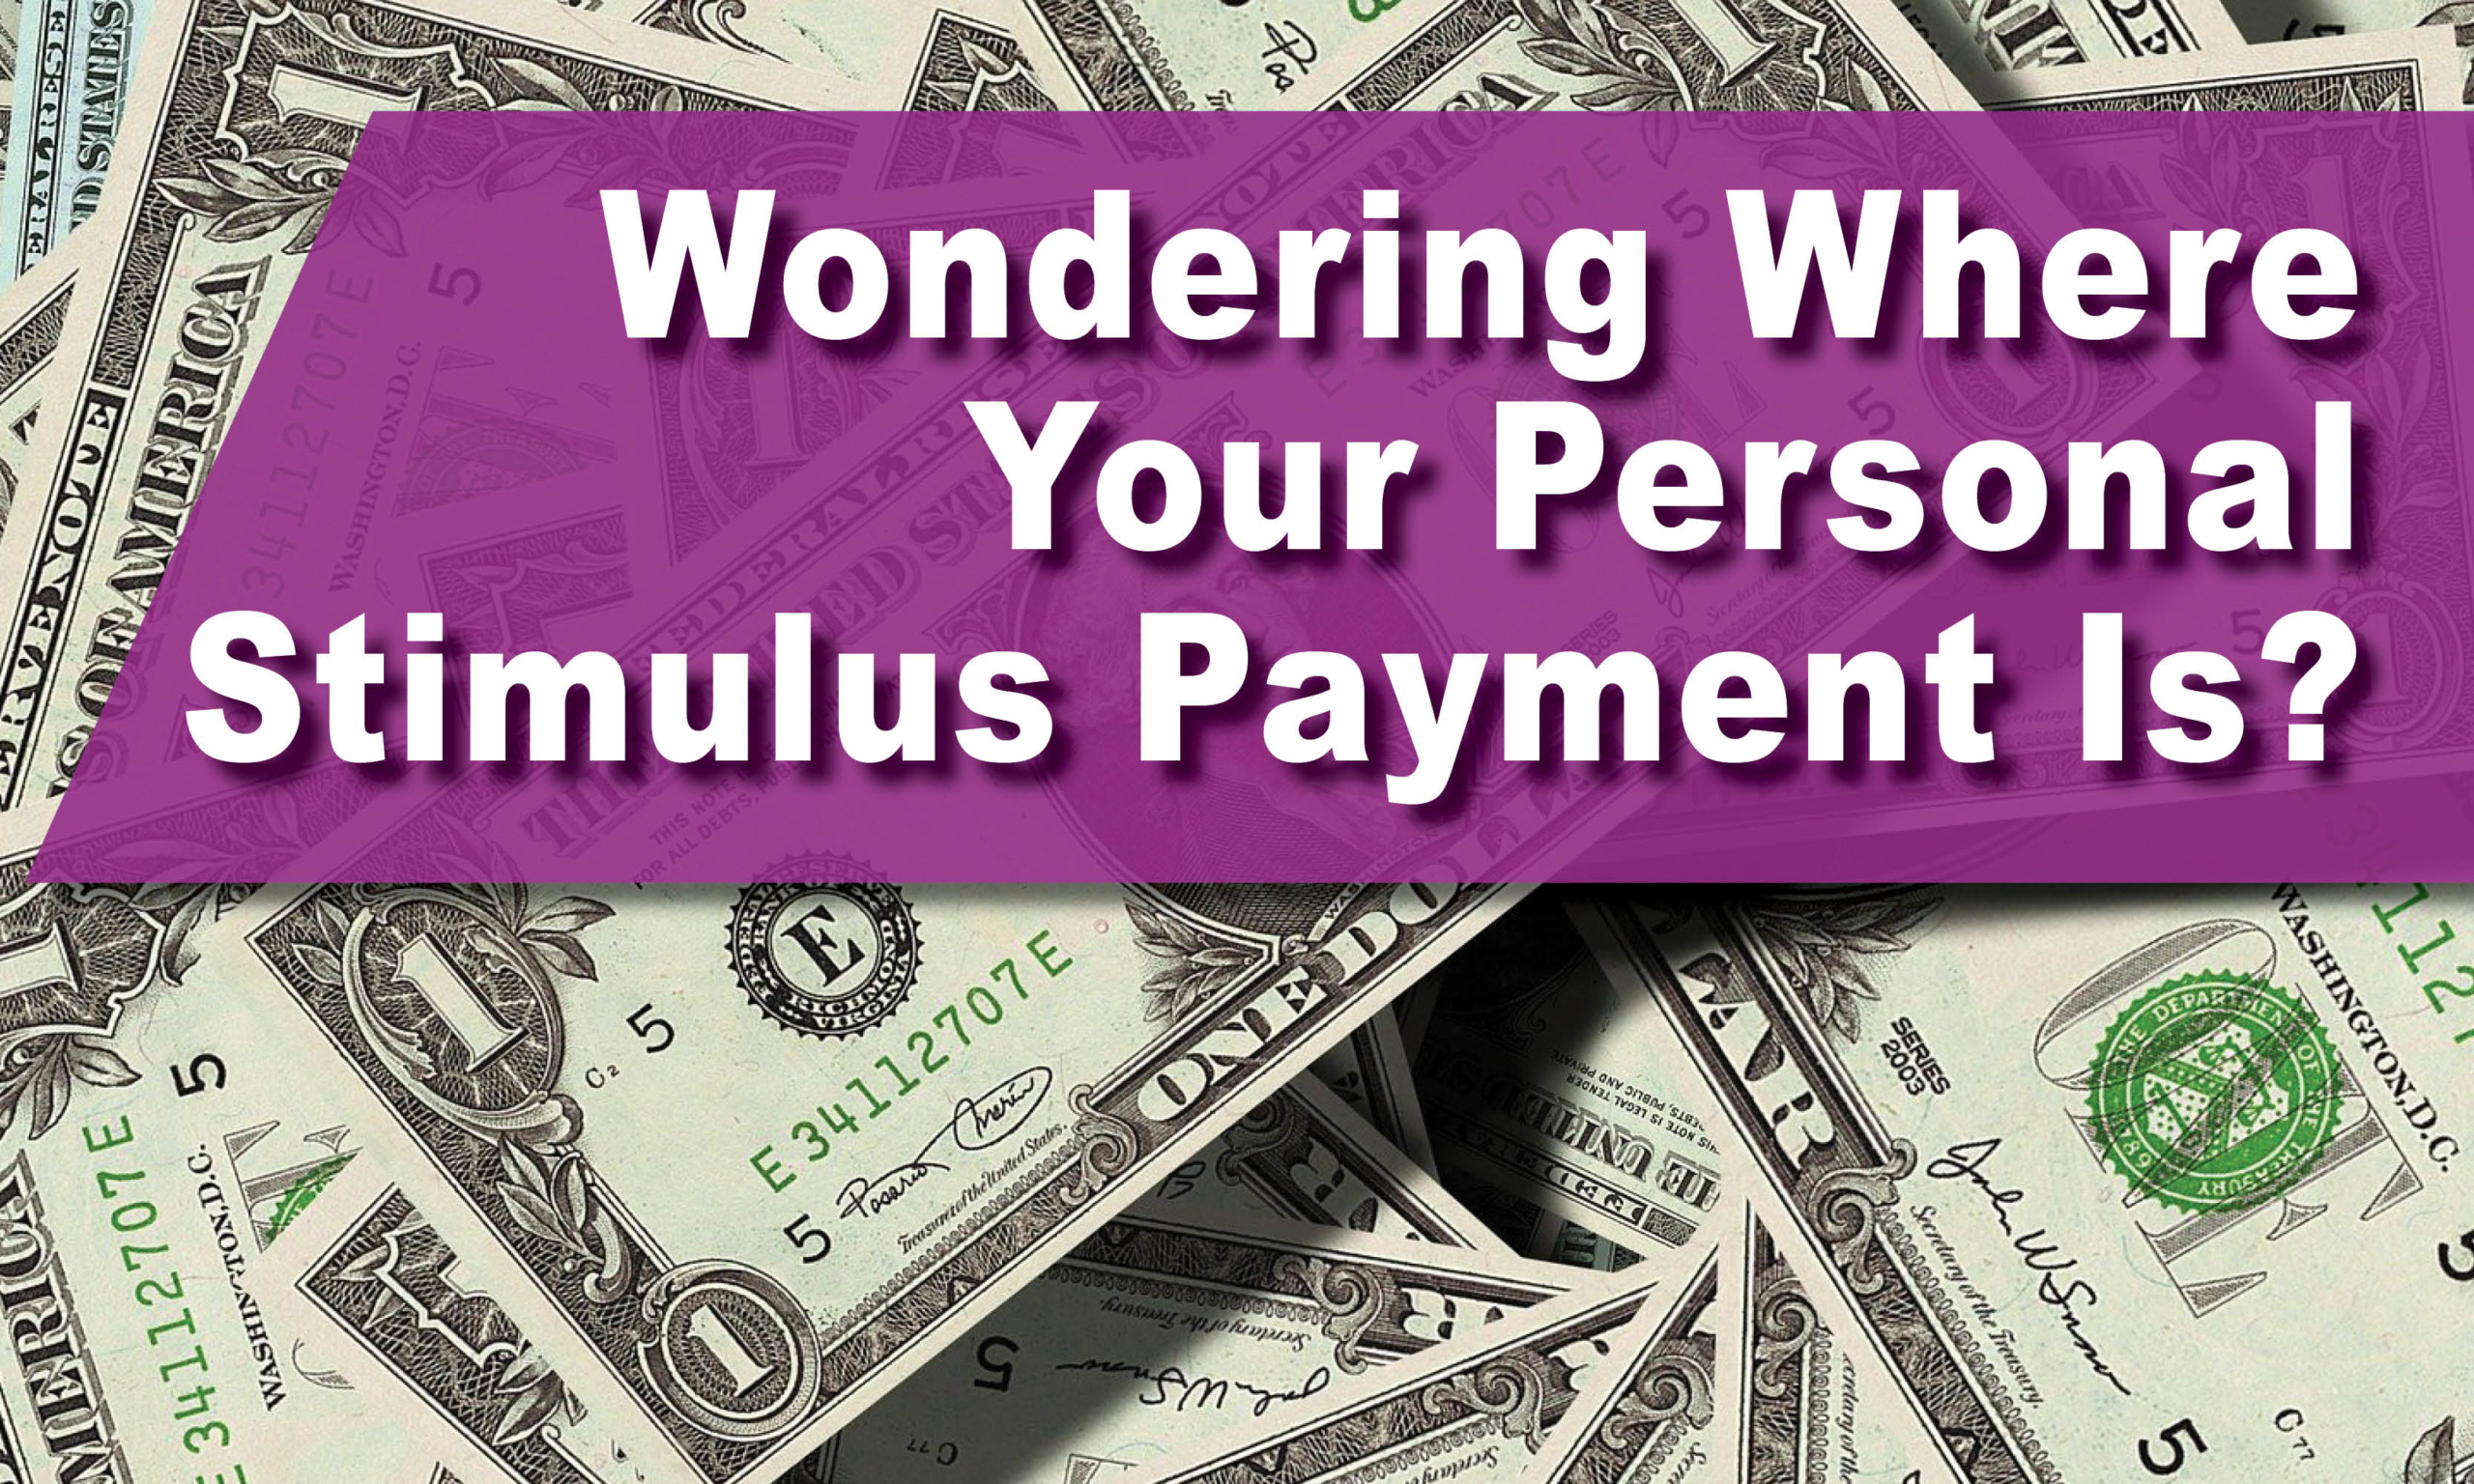 Wondering Where Your Personal Stimulus Payment Is?